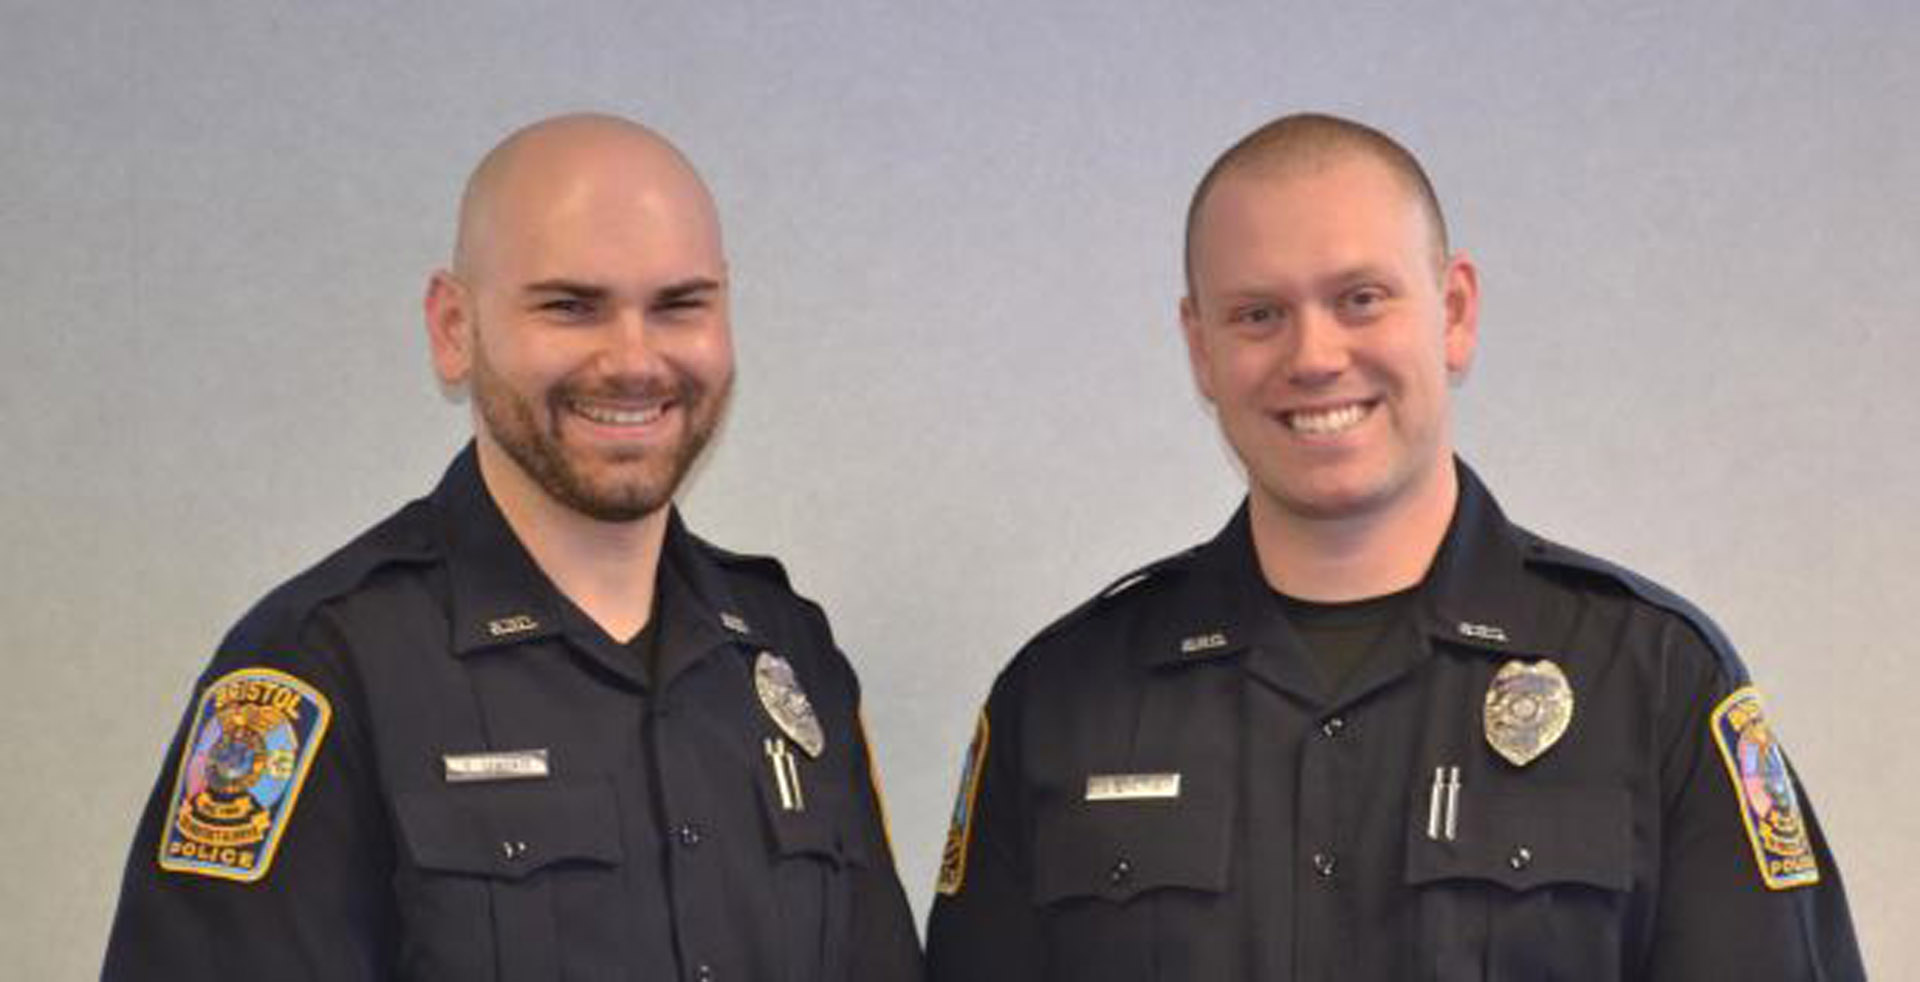 bristol officers save man's life.jpg